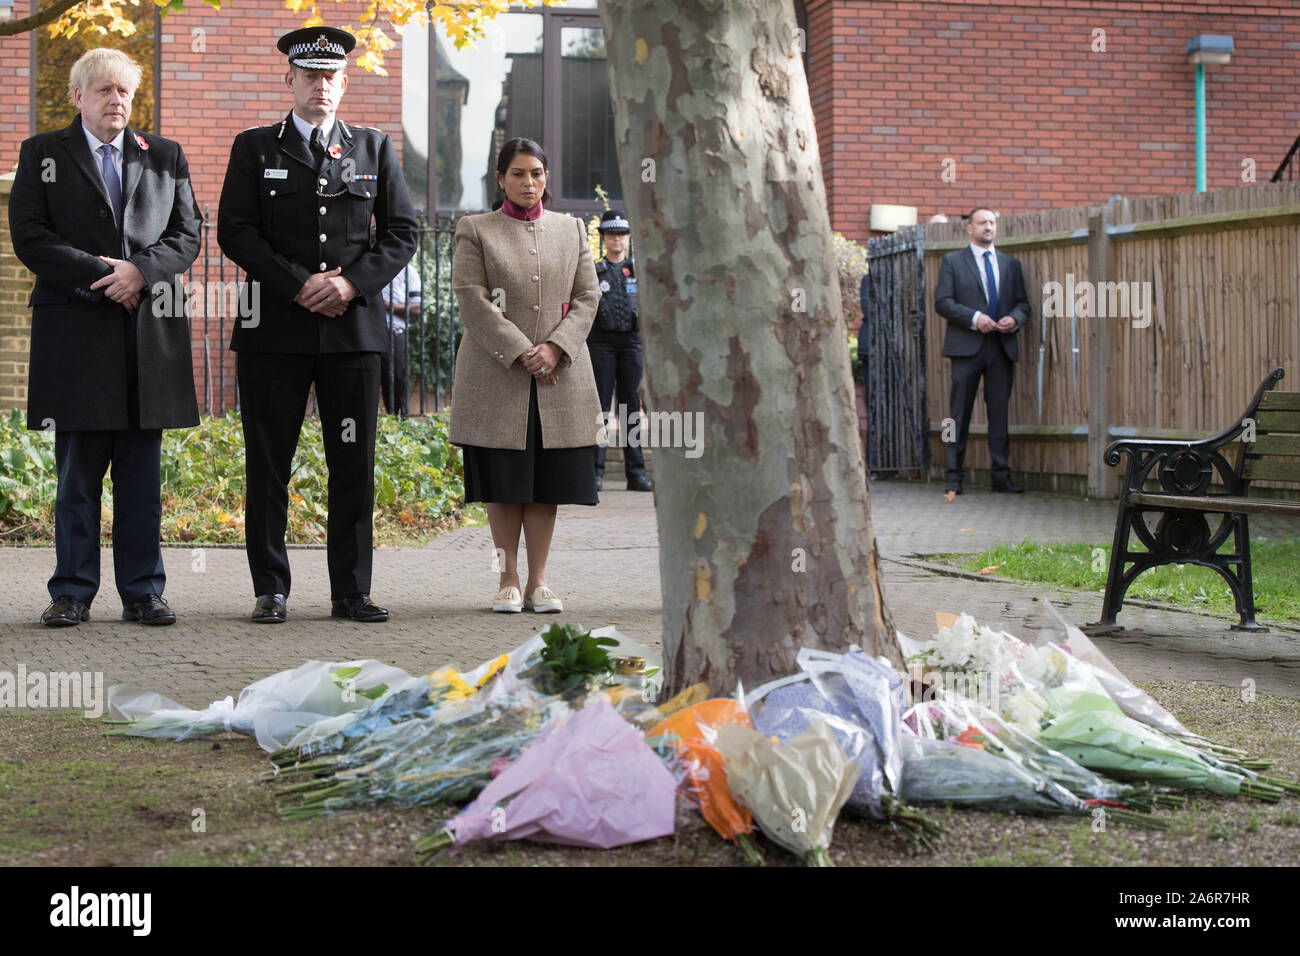 Prime Minister Boris Johnson stands with the Chief Constable of Essex Police, Ben-Julian Harrington and Home Secretary Priti Patel, after laying flowers during a visit to Thurrock Council Offices in Essex after the bodies of 39 people were found in a lorry container last week. Stock Photo